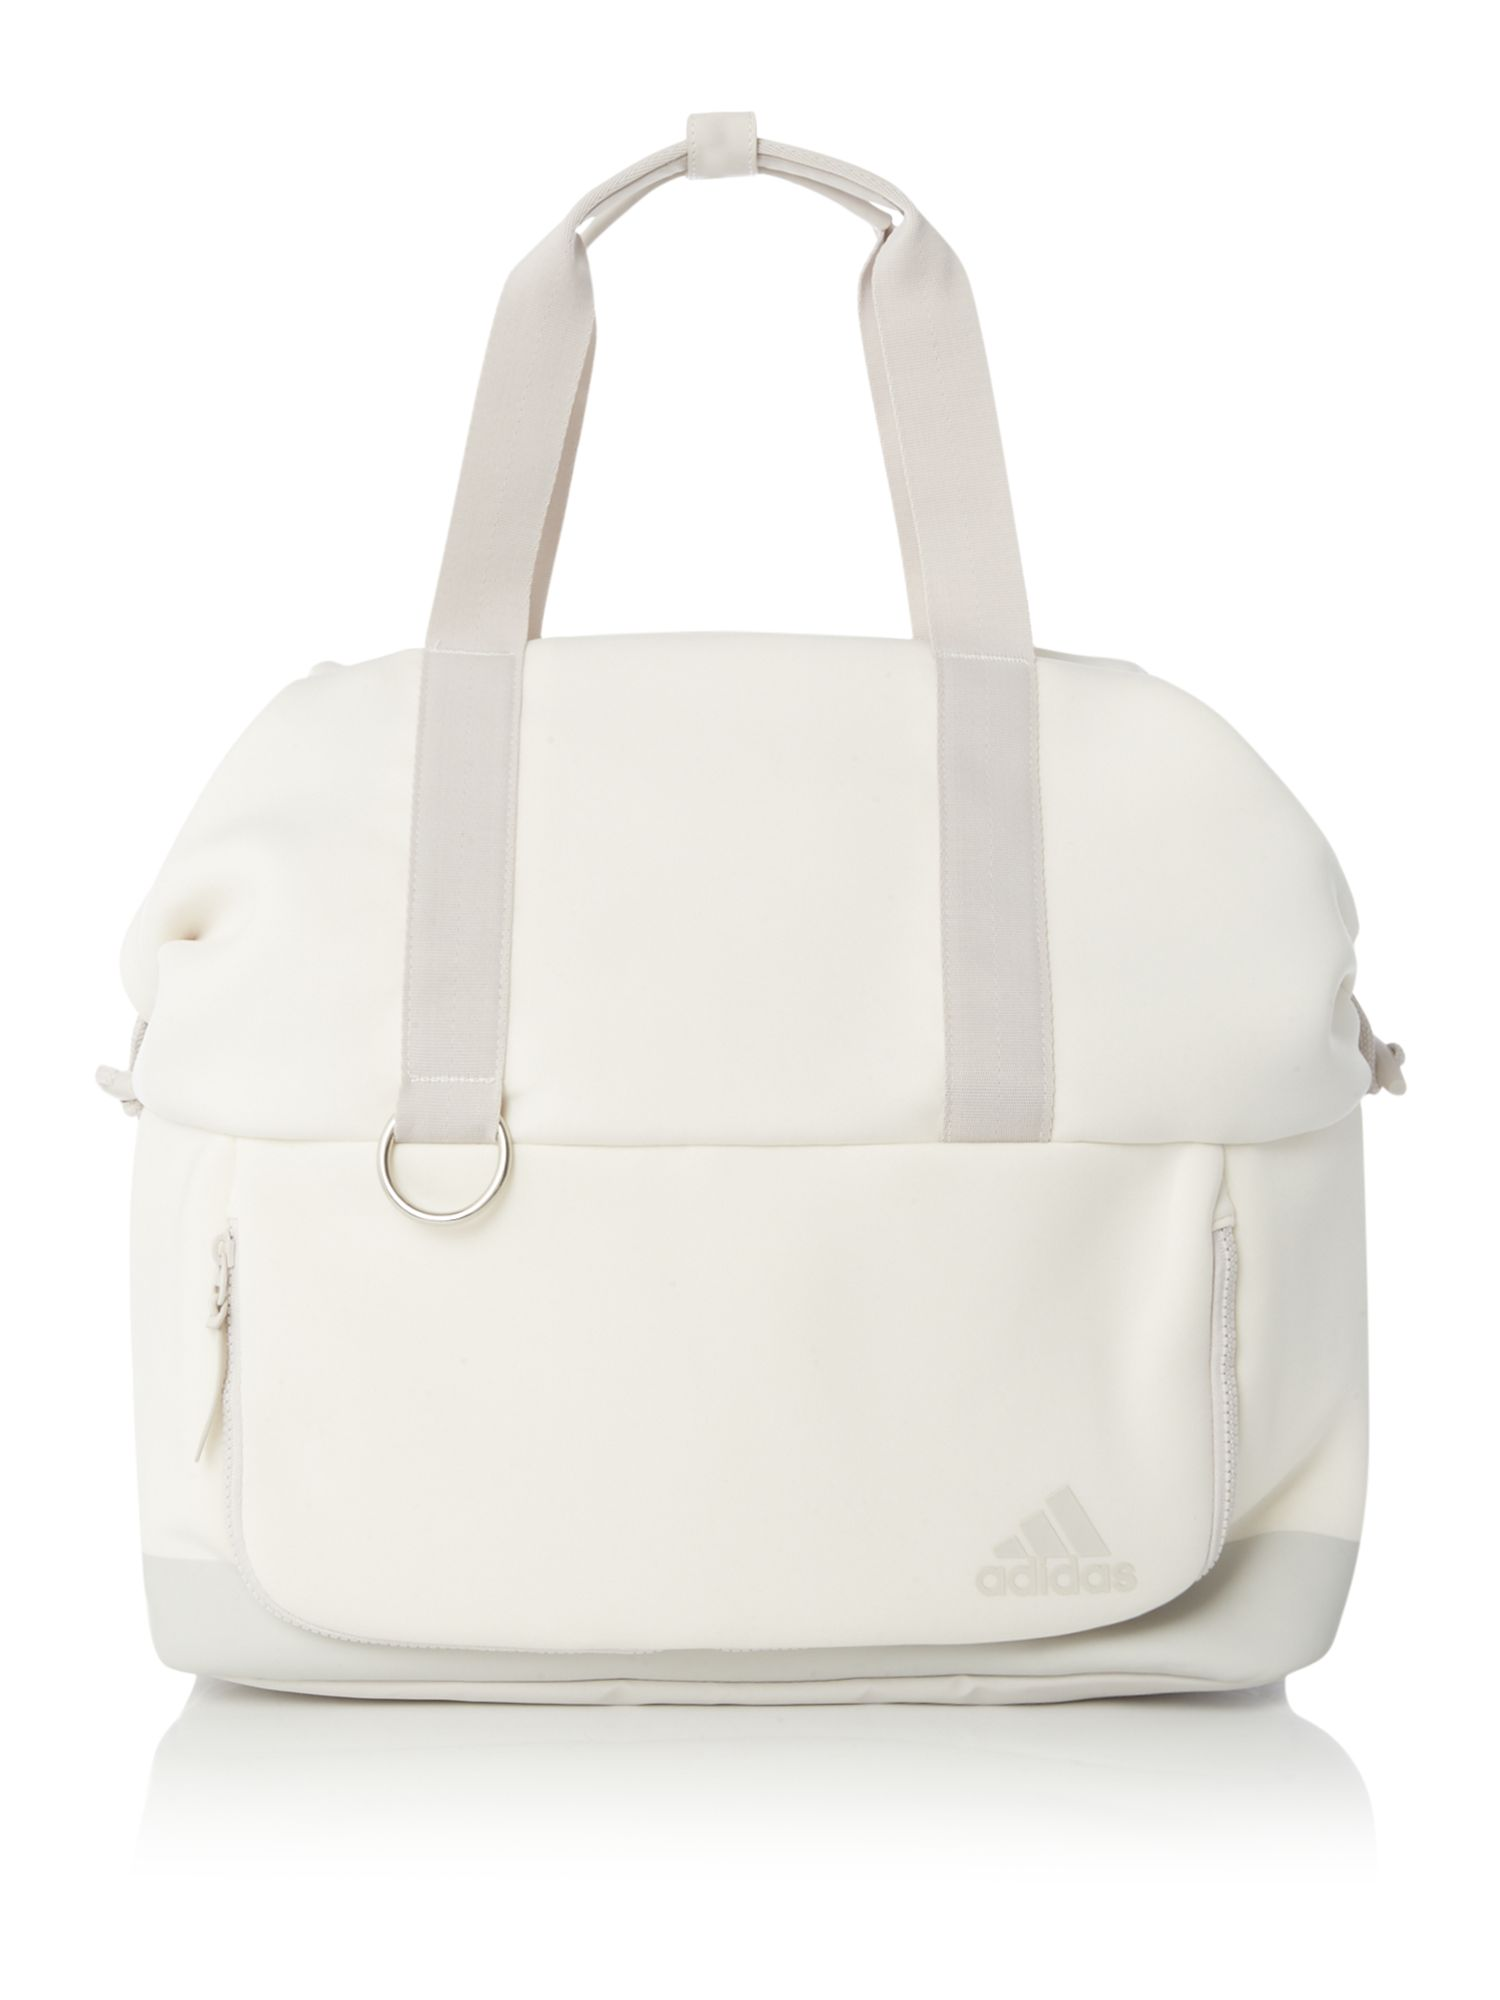 Adidas 3 way tote bag, Off White